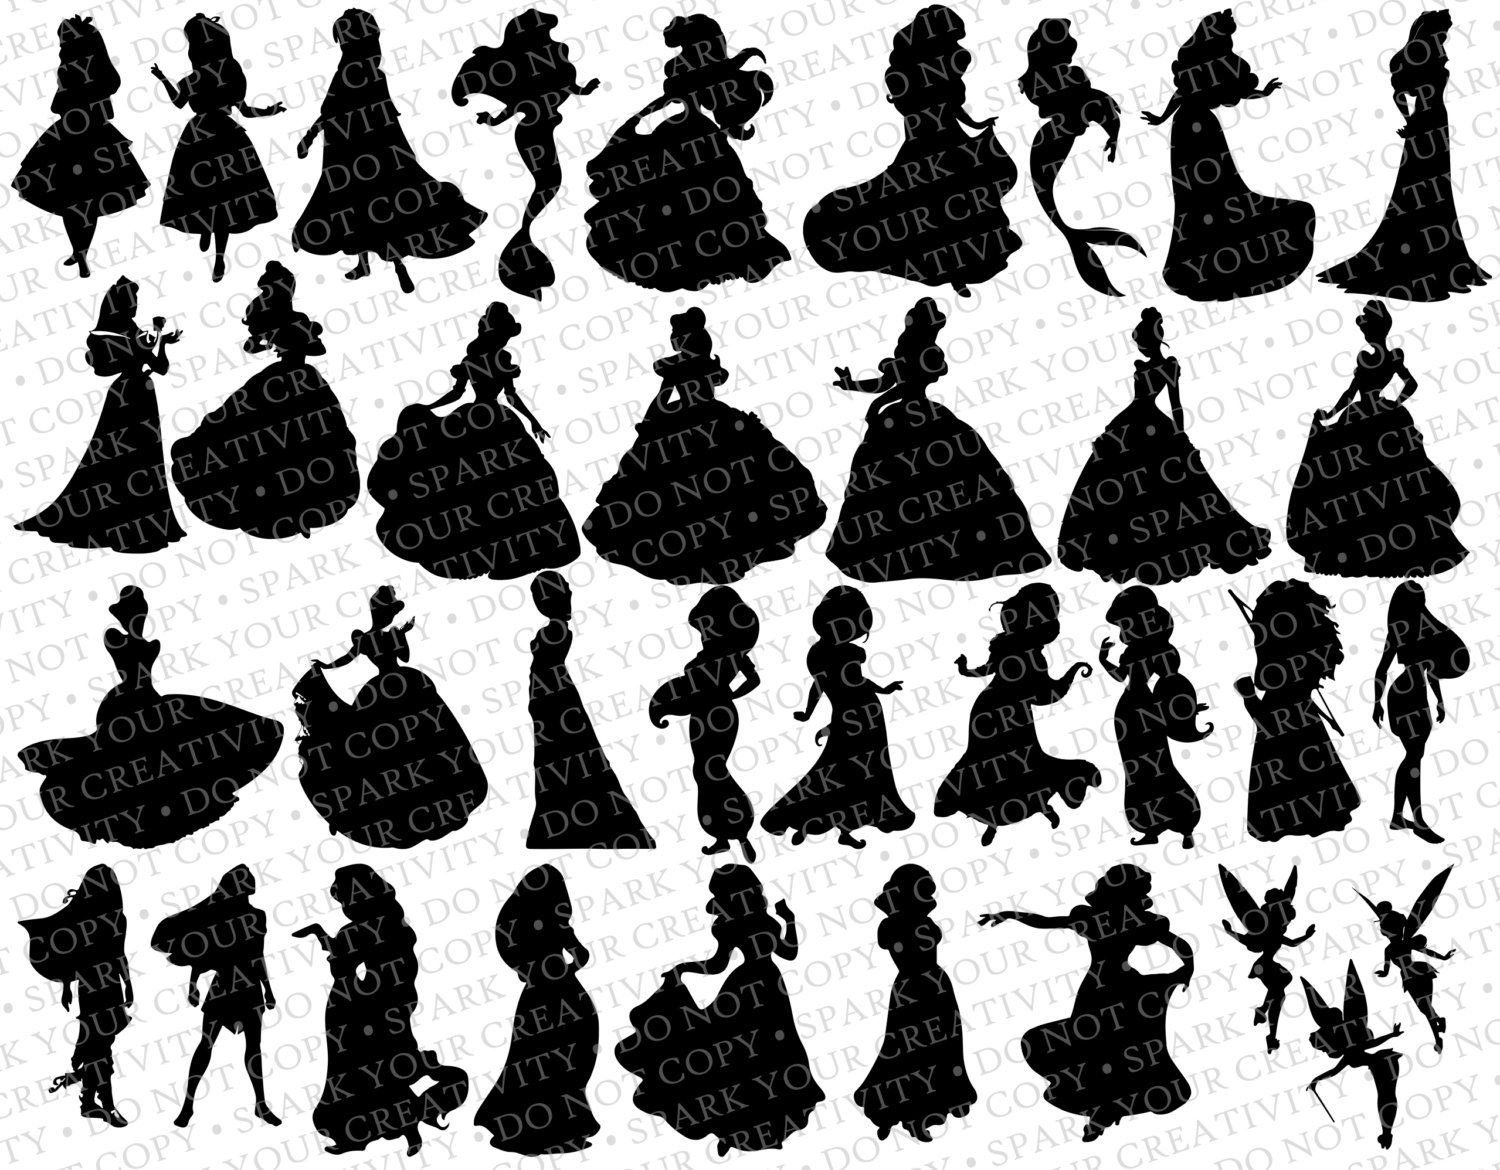 Disney Princess Silhouettes    35 By Sparkyourcreativity On Etsy